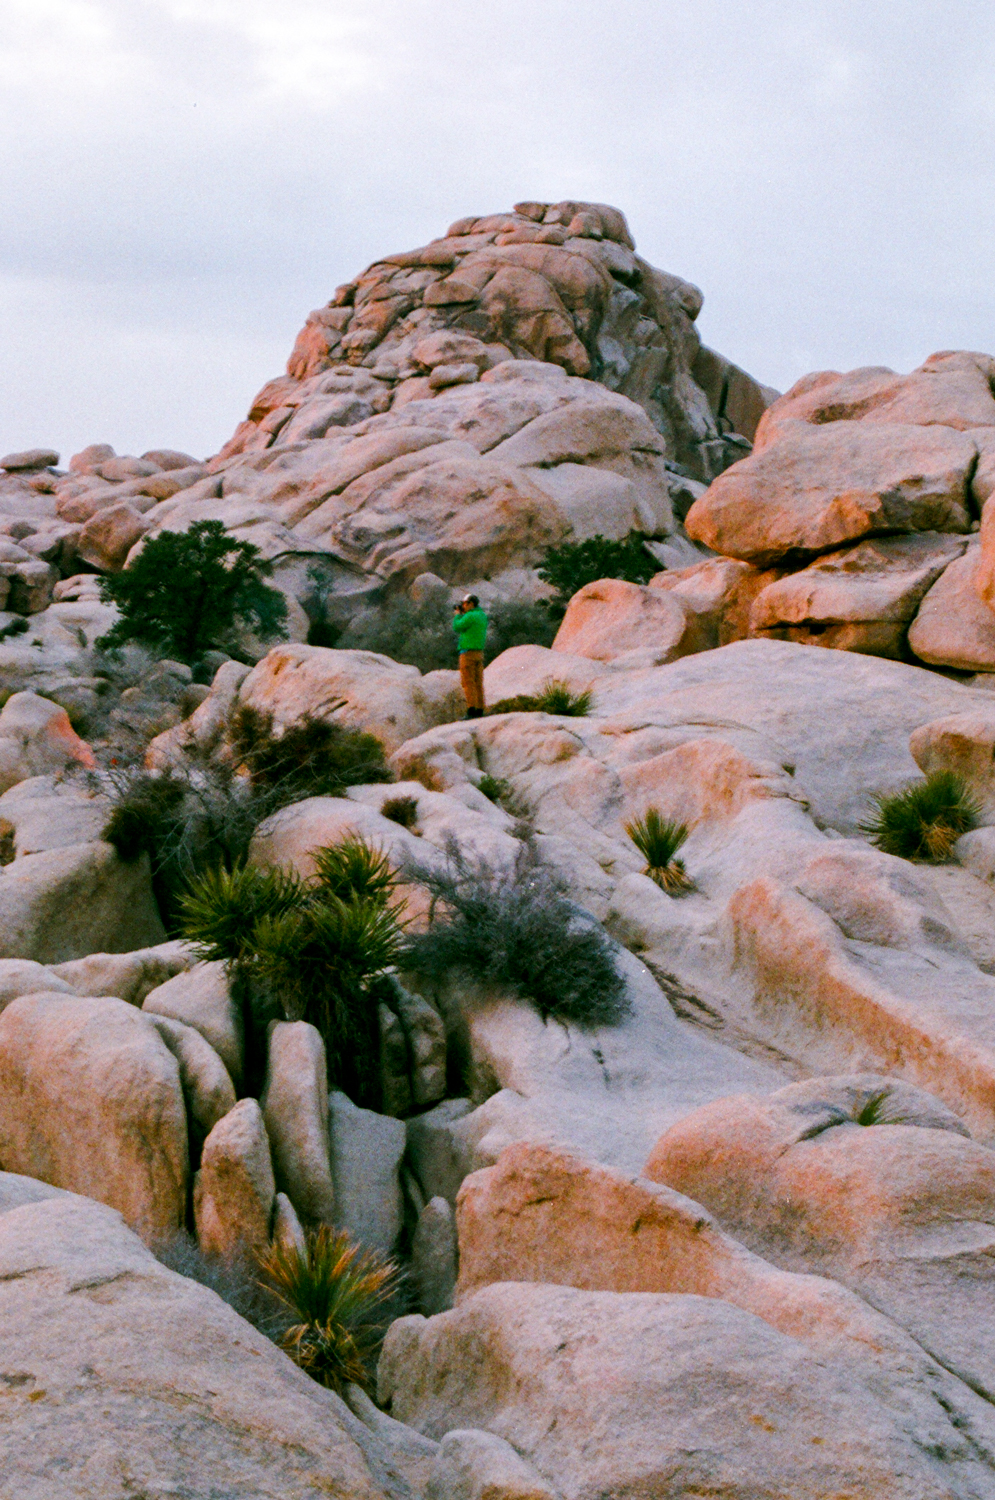 Finding the best sunset perch in Joshua Tree